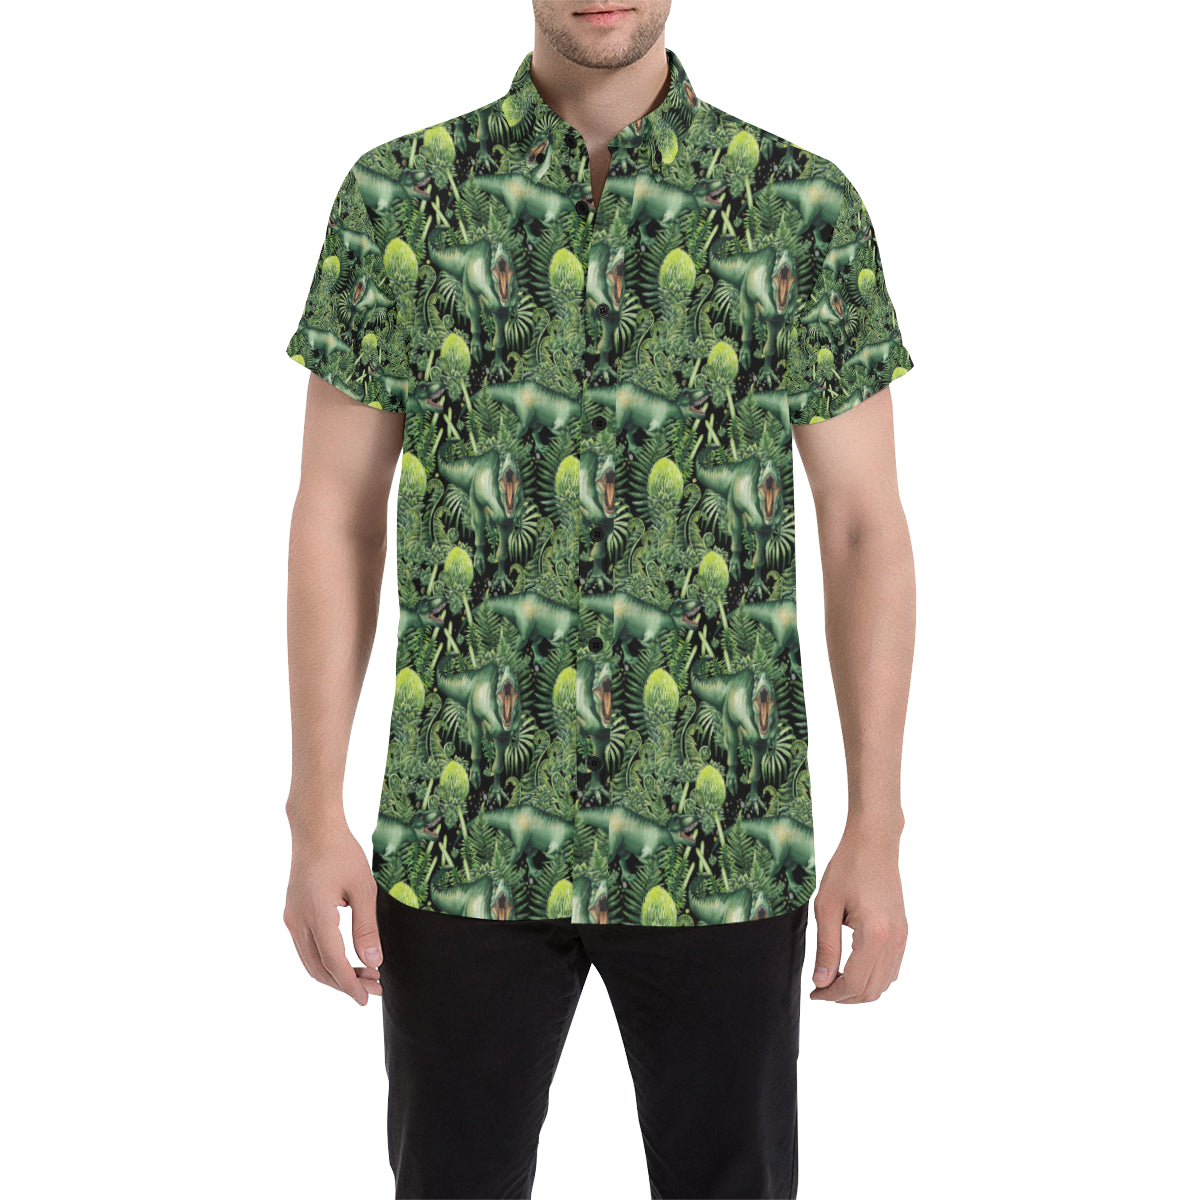 Dinosaur T Rex Print Pattern Men Button Up Shirt